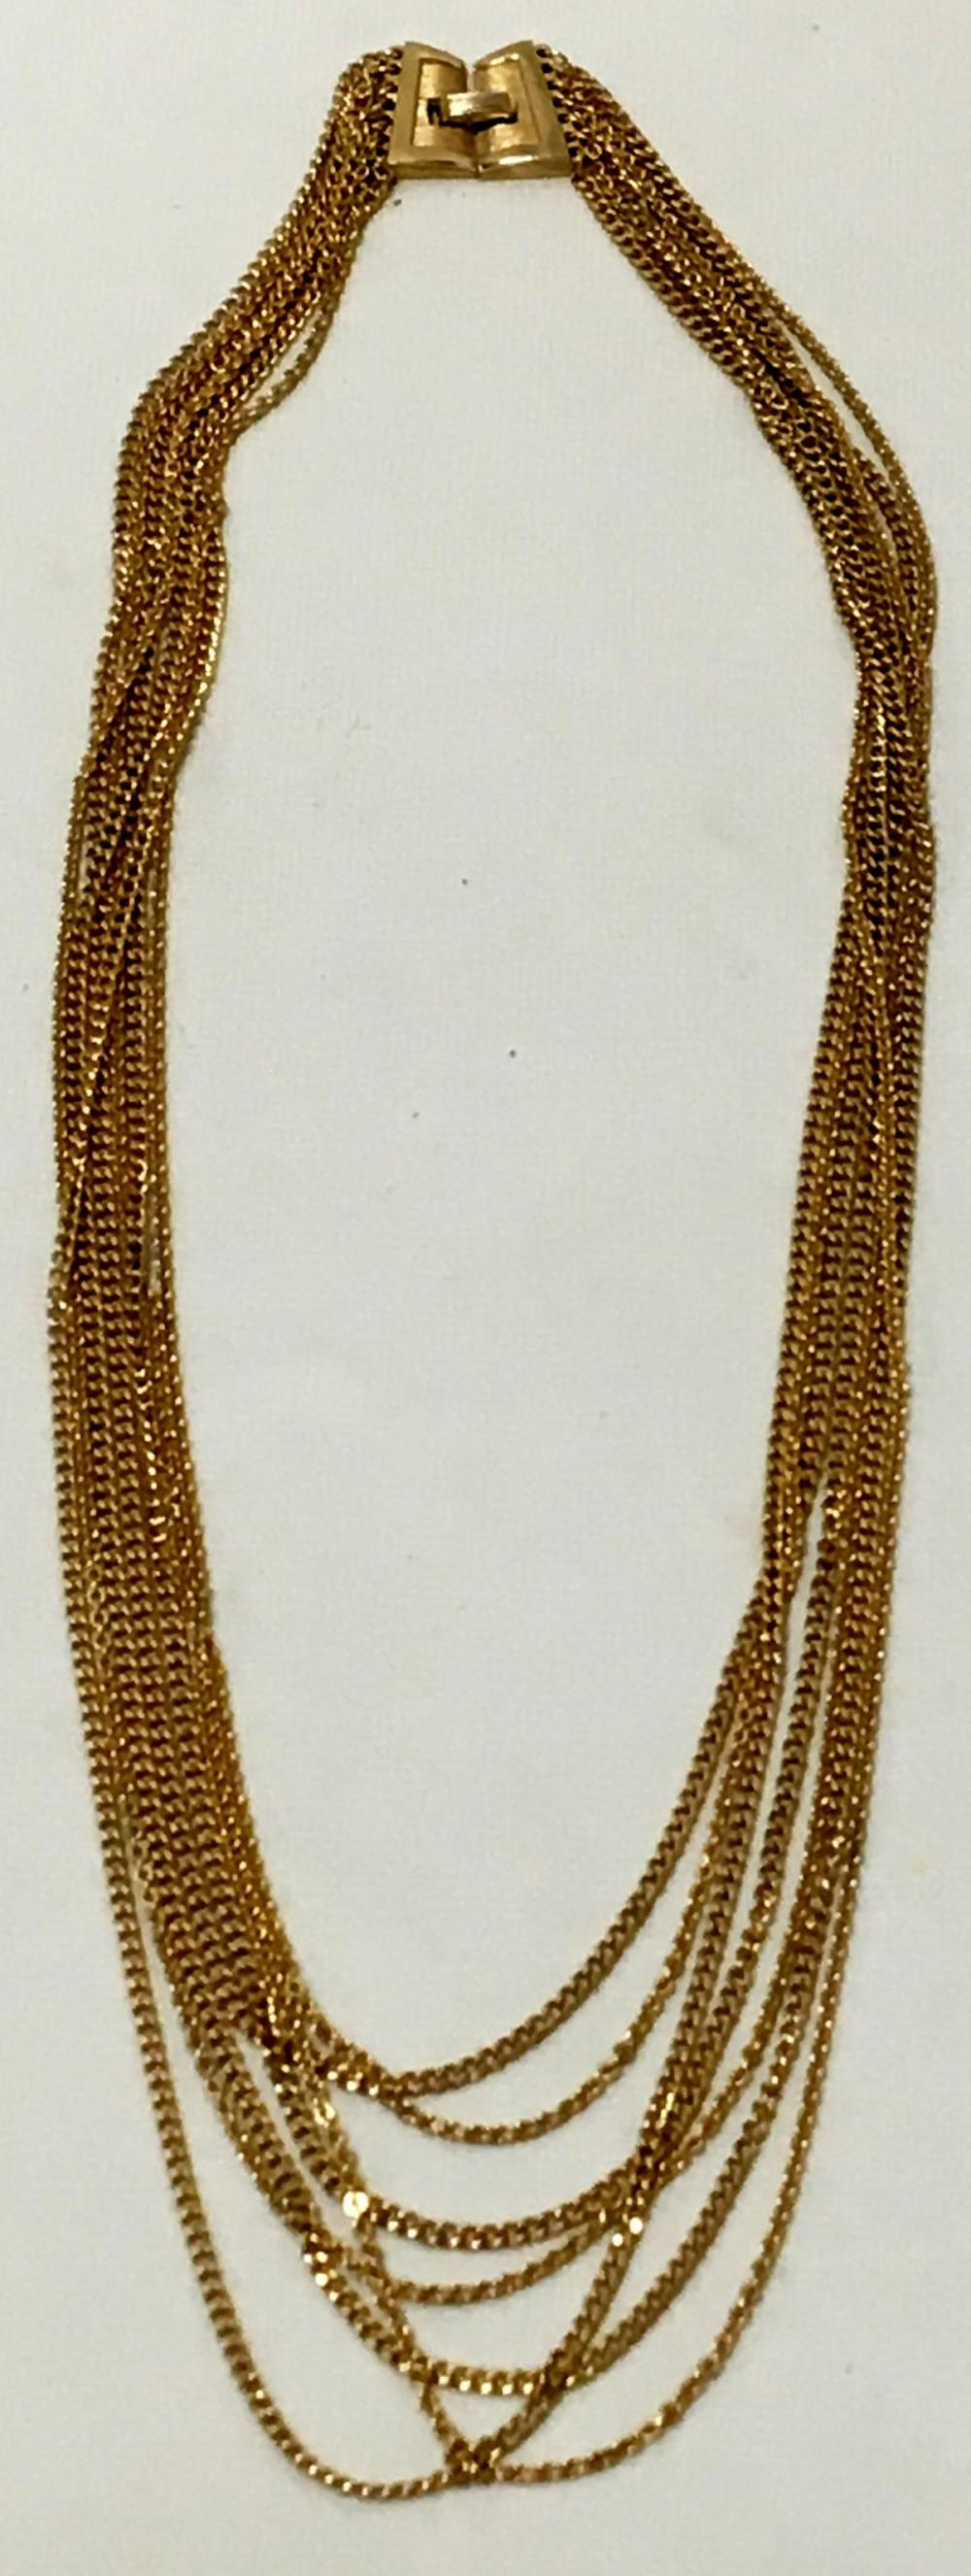 Vintage c. 1960's Signed Trifari Multi Strand Gold Tone Chain Necklace